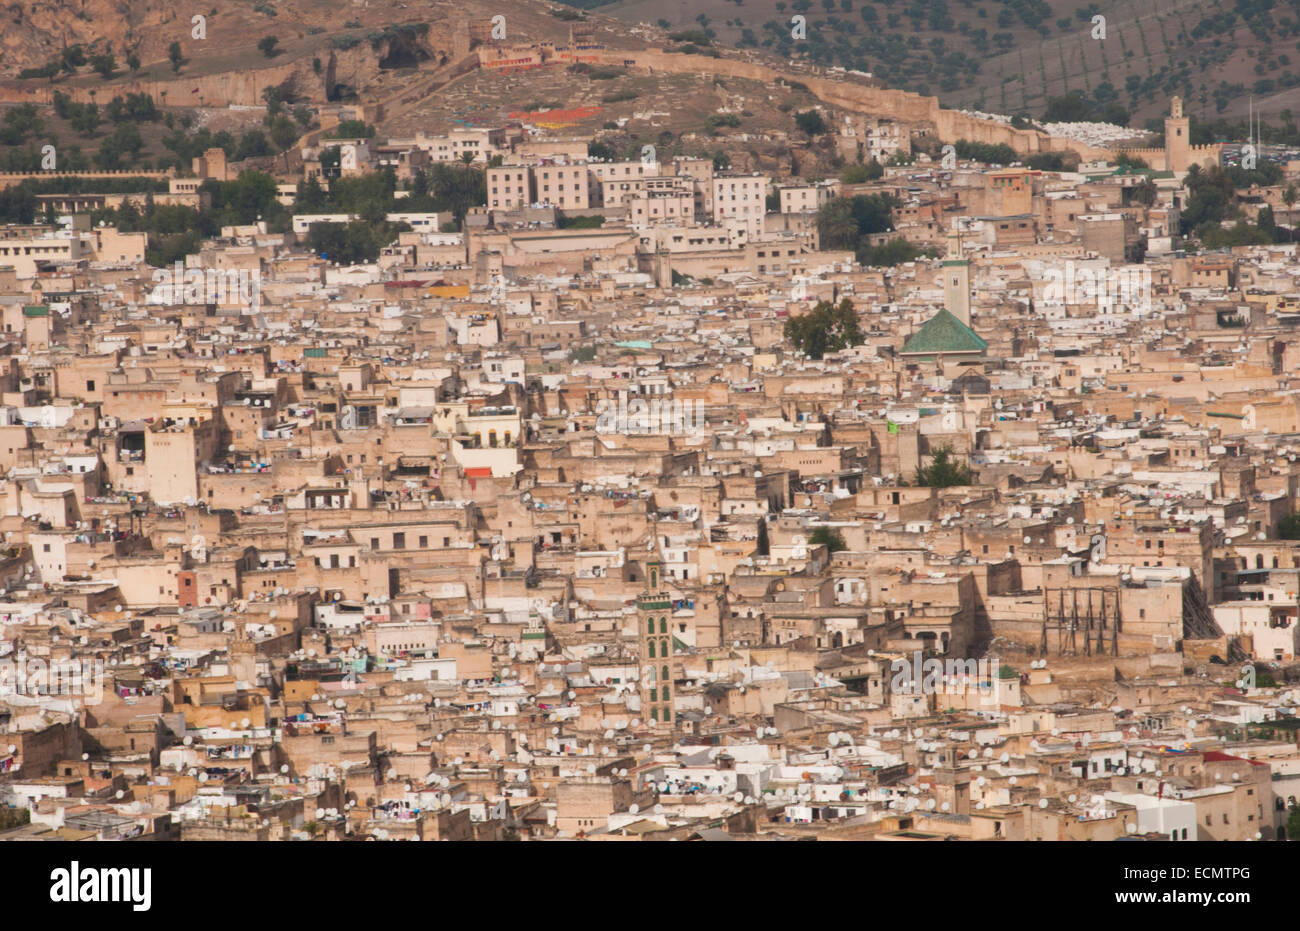 fez morocco panoramic view of crowded city and old town medina with walls from hill above